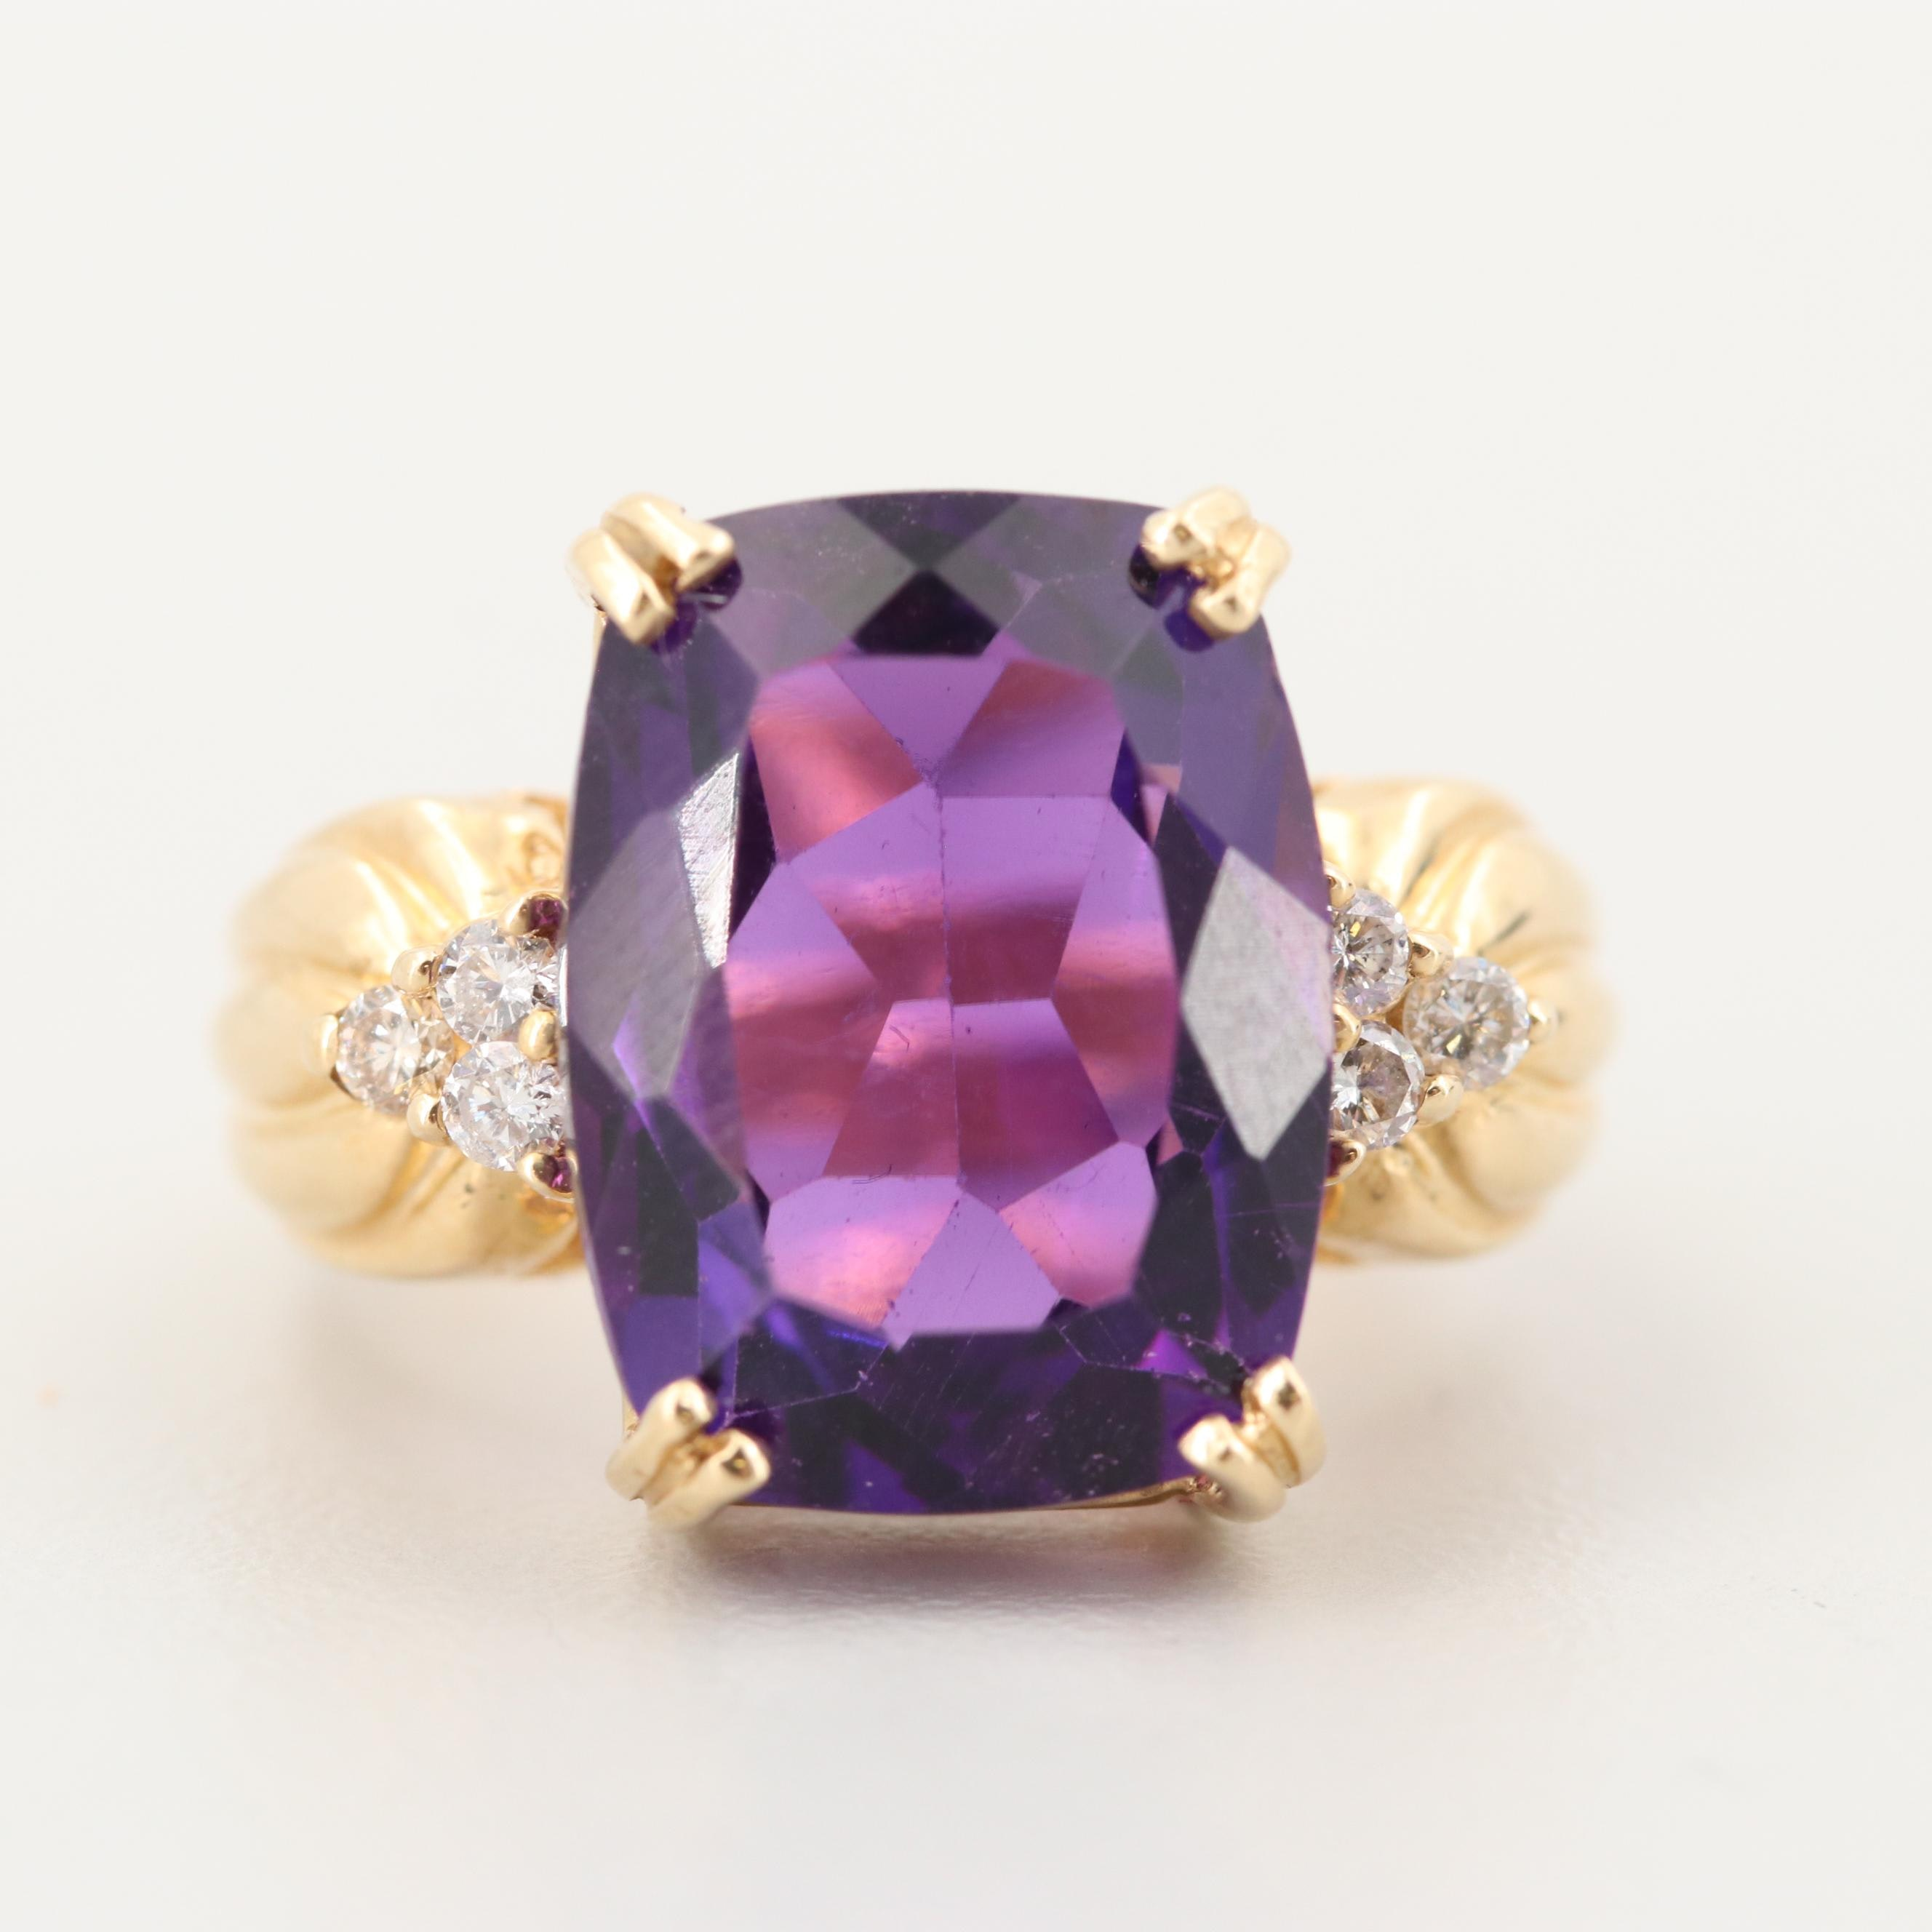 14K Yellow Gold Amethyst Ring with Diamond Accents